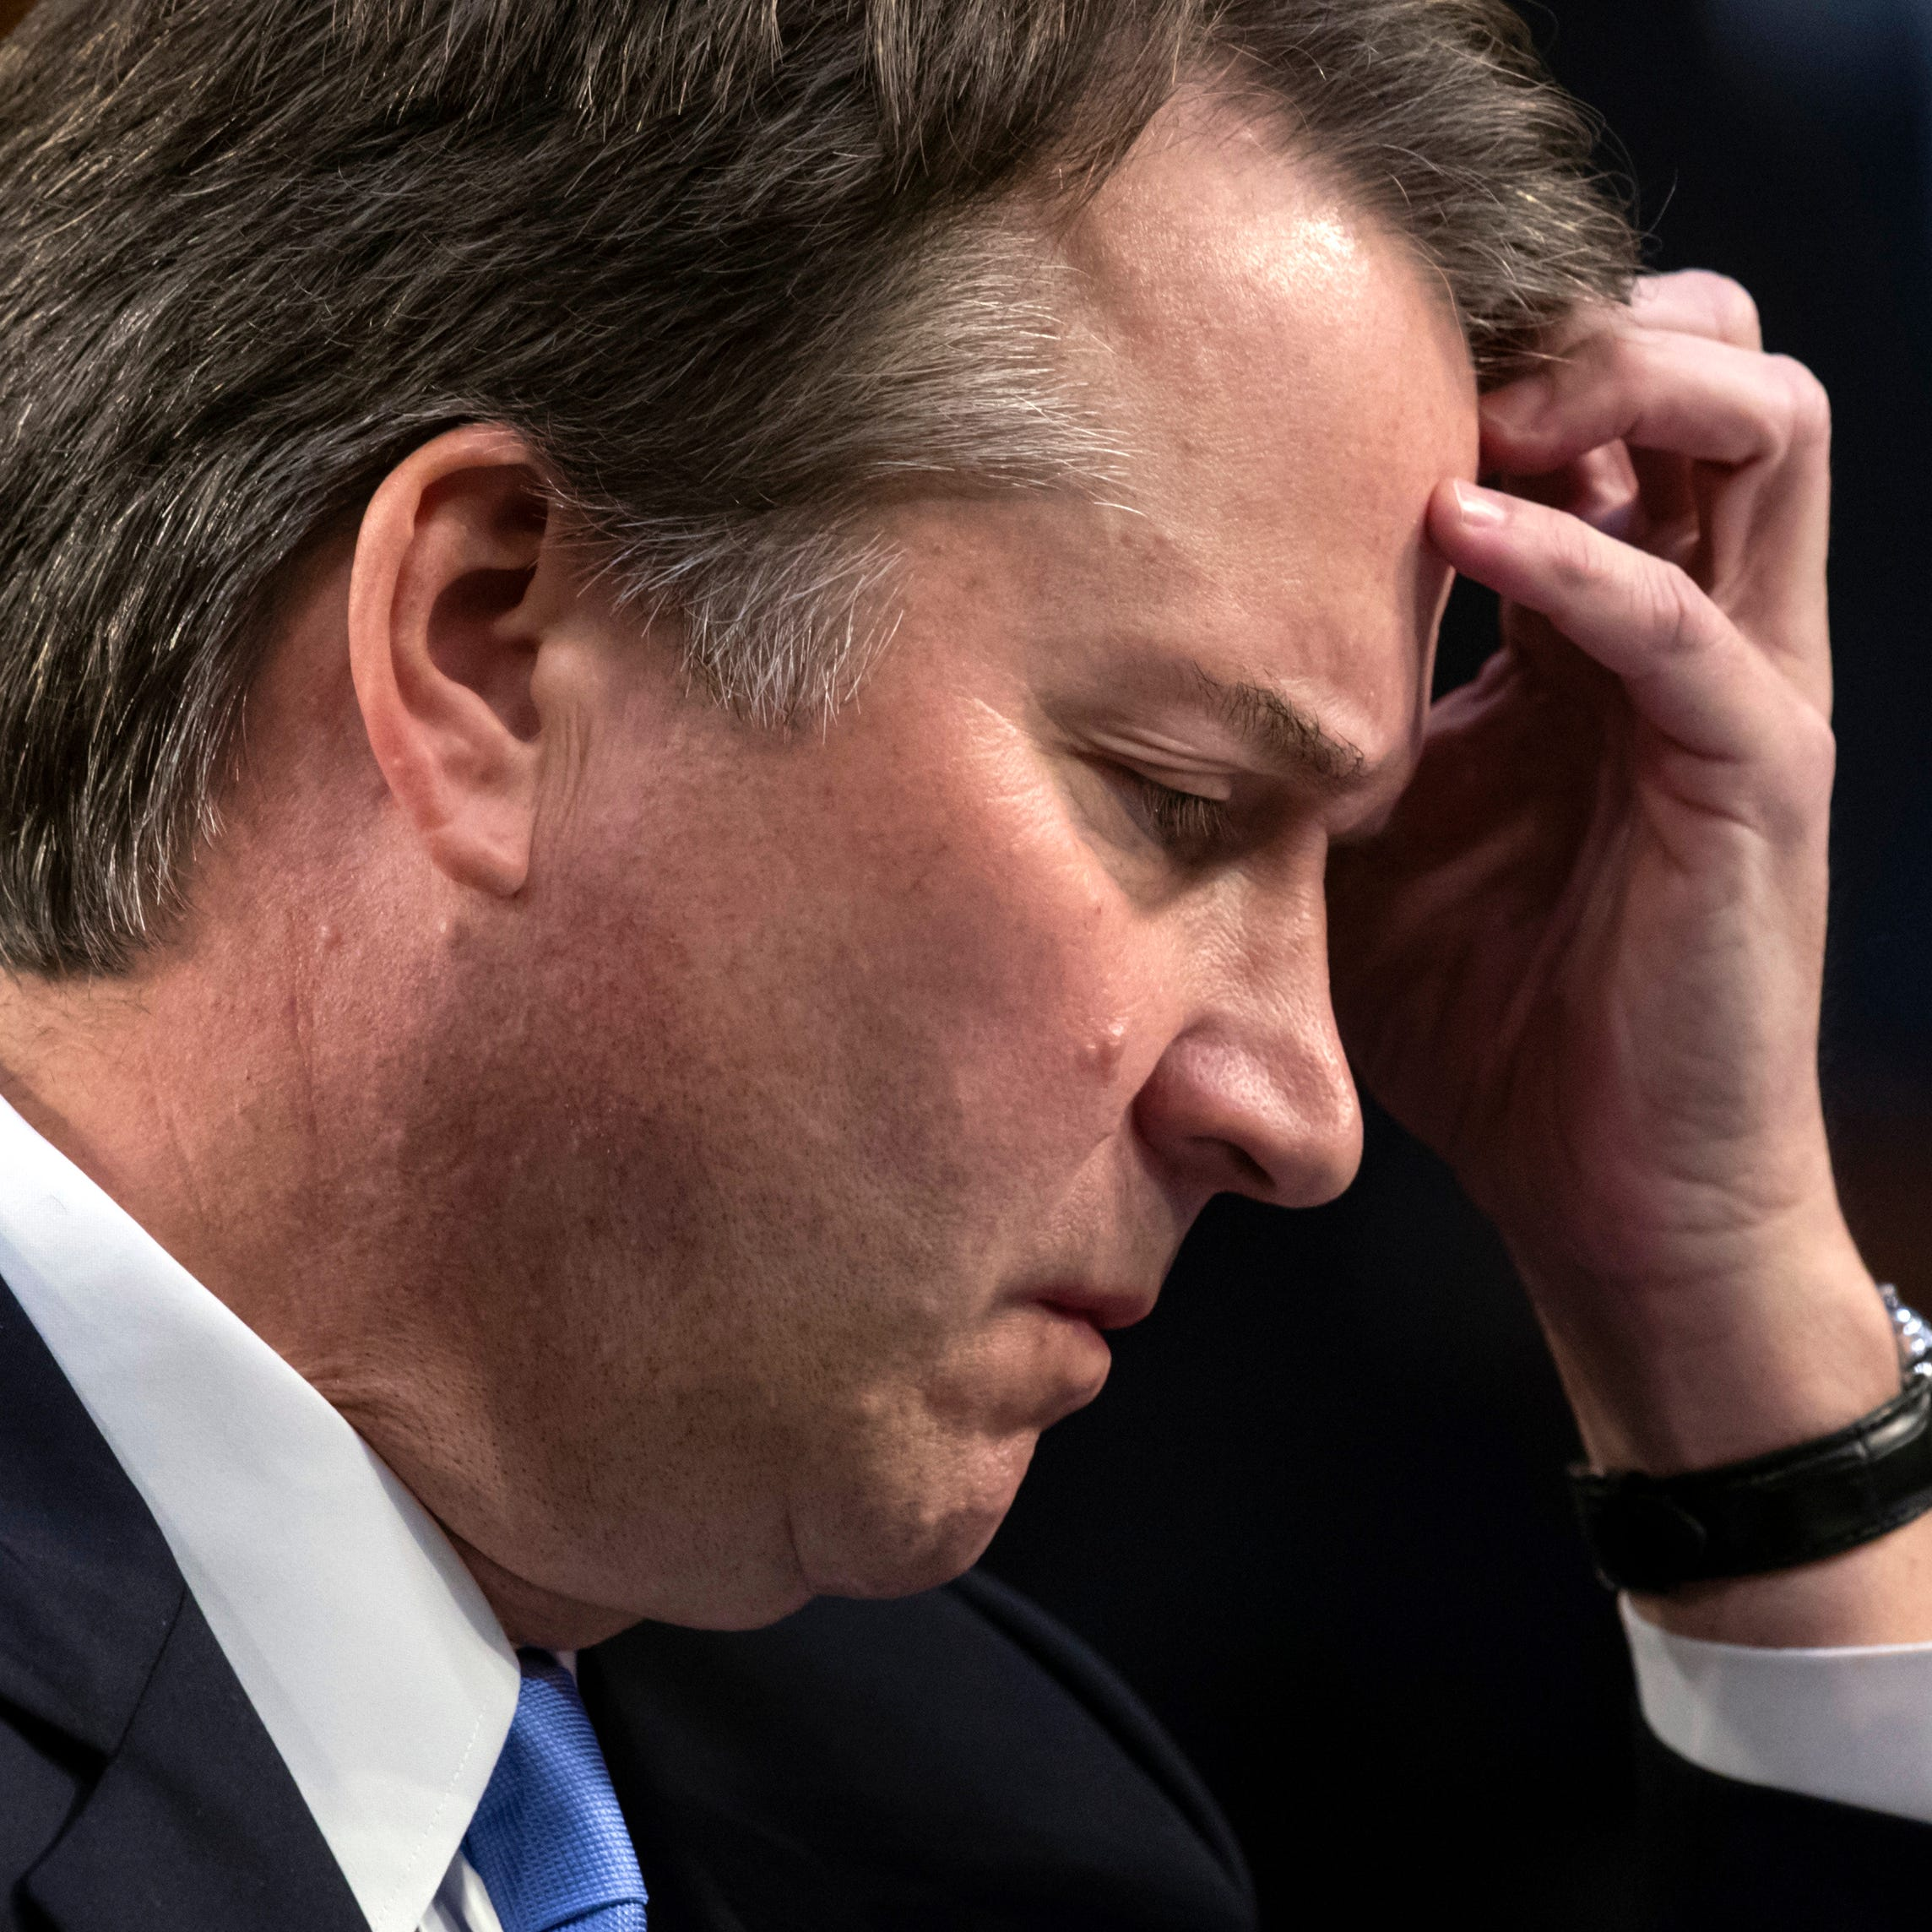 Opinion: Kavanaugh allegation wouldn't hold up in court